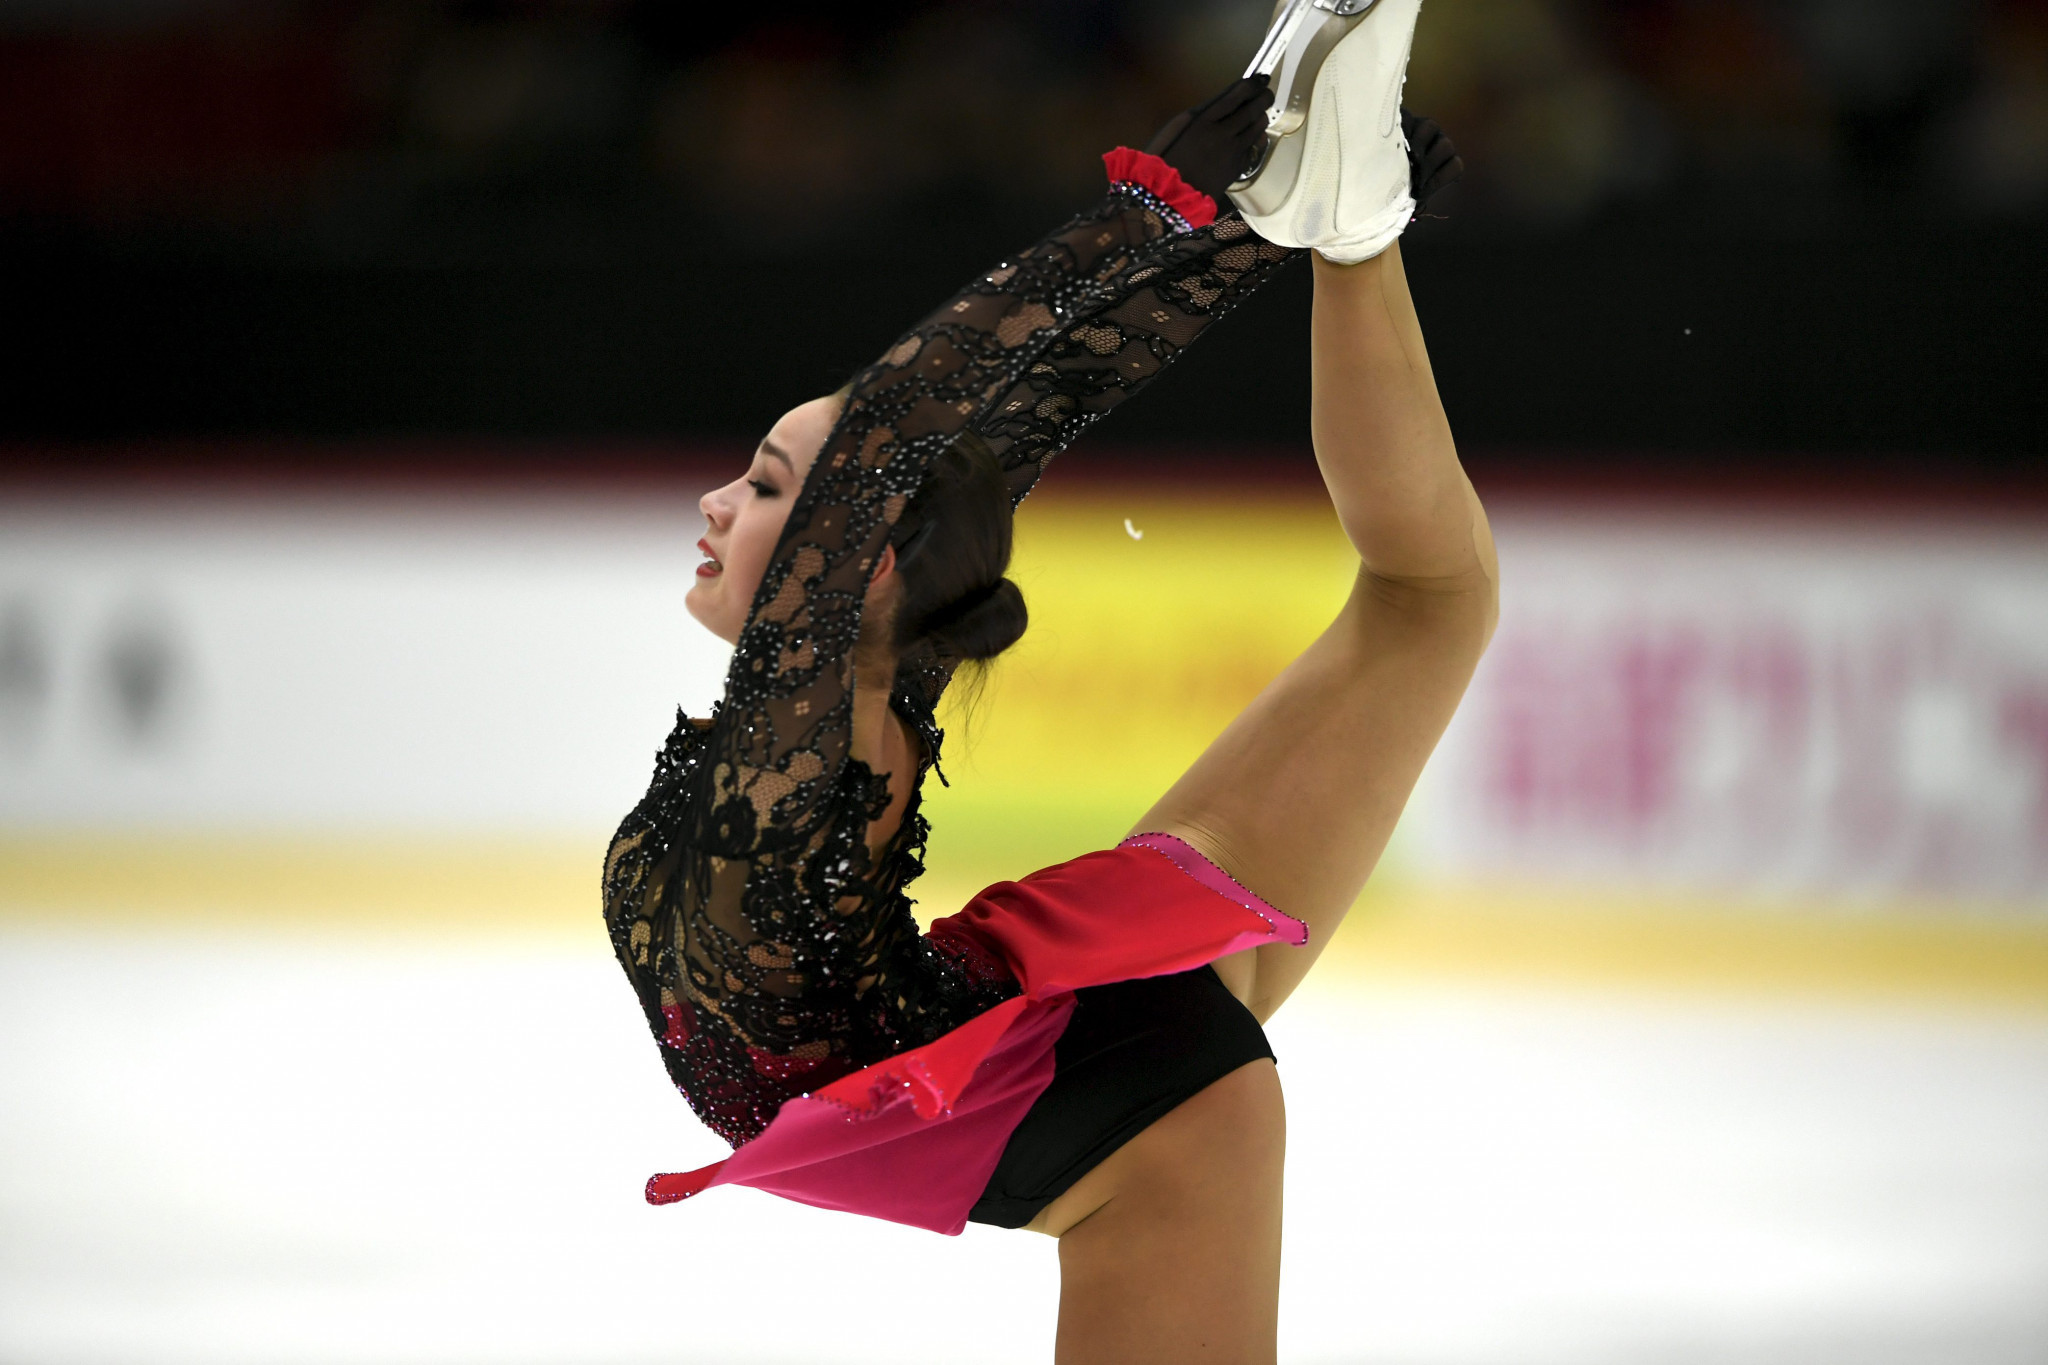 Russia's Alina Zagitova competes at her home Grand Prix after winning the Olympic gold medal at Pyeongchang 2018 ©Getty Images